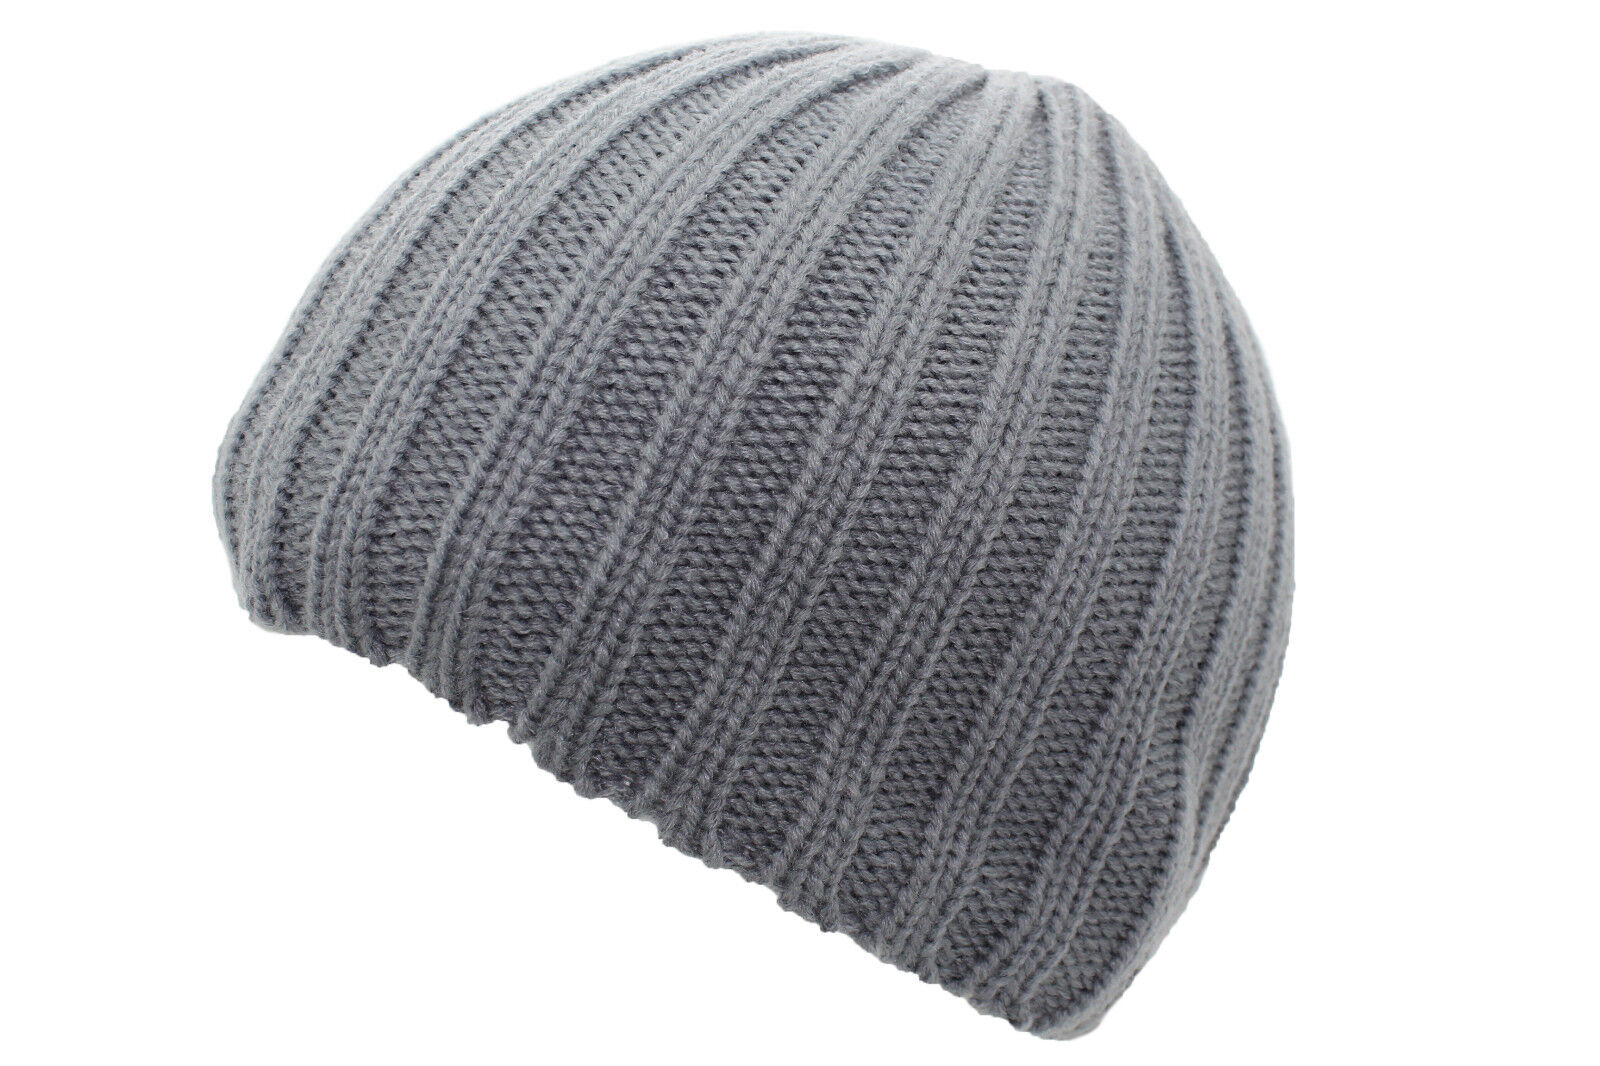 Chunky Knitted Beanie Hat Winter Wooly Ski Cap Heavy Ribbed Knit Design 3  Colour. 9ccd226c3869